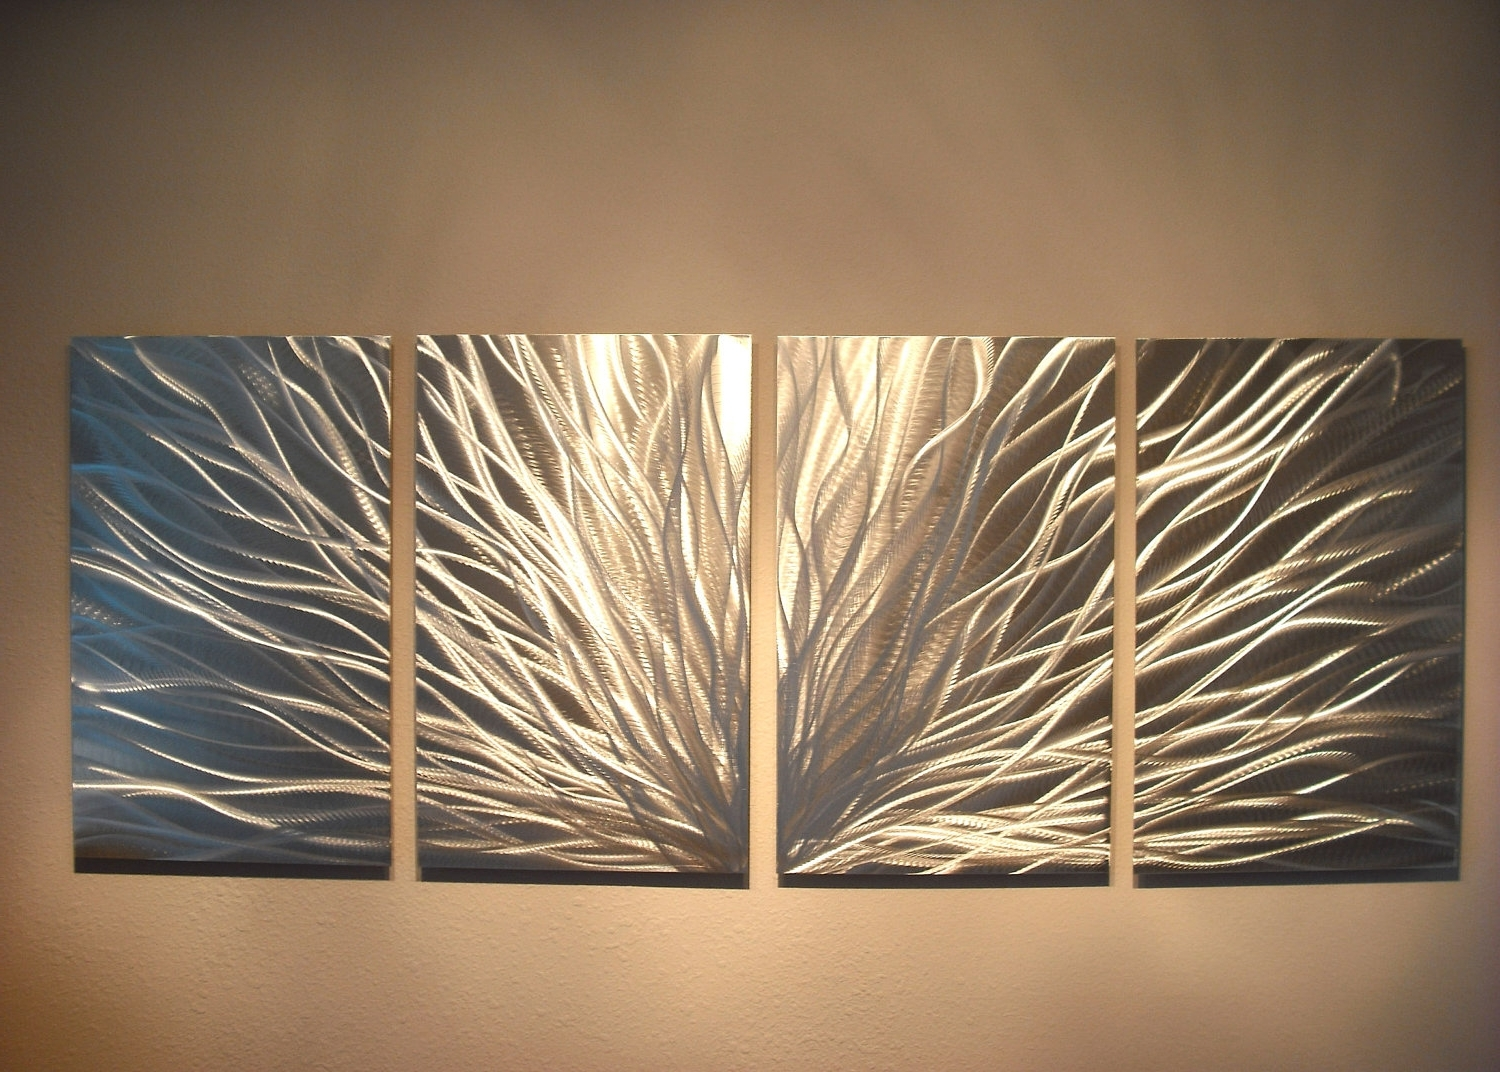 Radiance – Abstract Metal Wall Art Contemporary Modern Decor For 2018 Big Metal Wall Art (View 12 of 15)